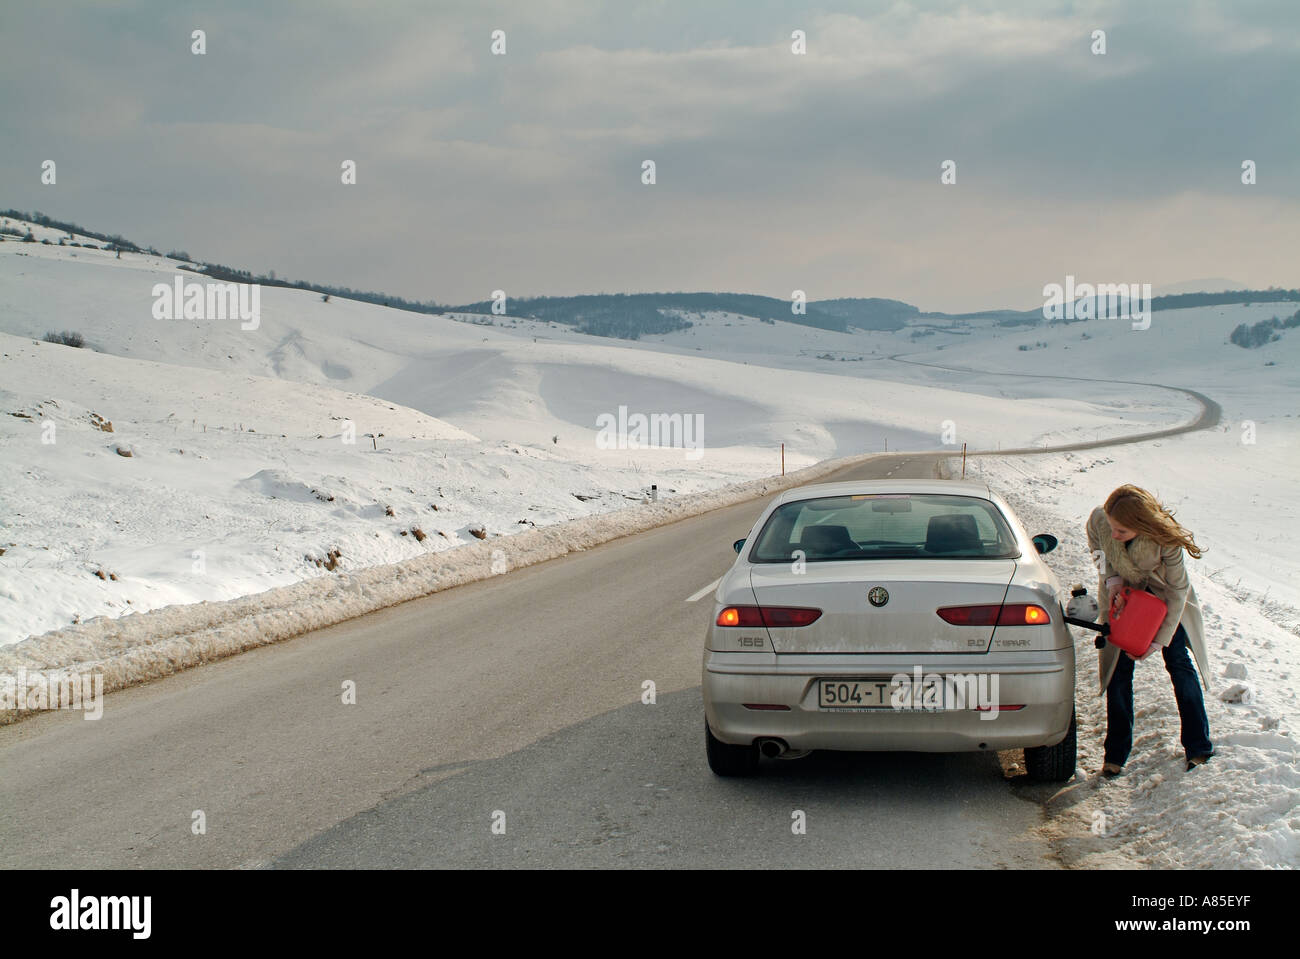 Woman Refilling Her Car with Petrol After Breaking Down on an Isolated Rural Road in Winter - Stock Image